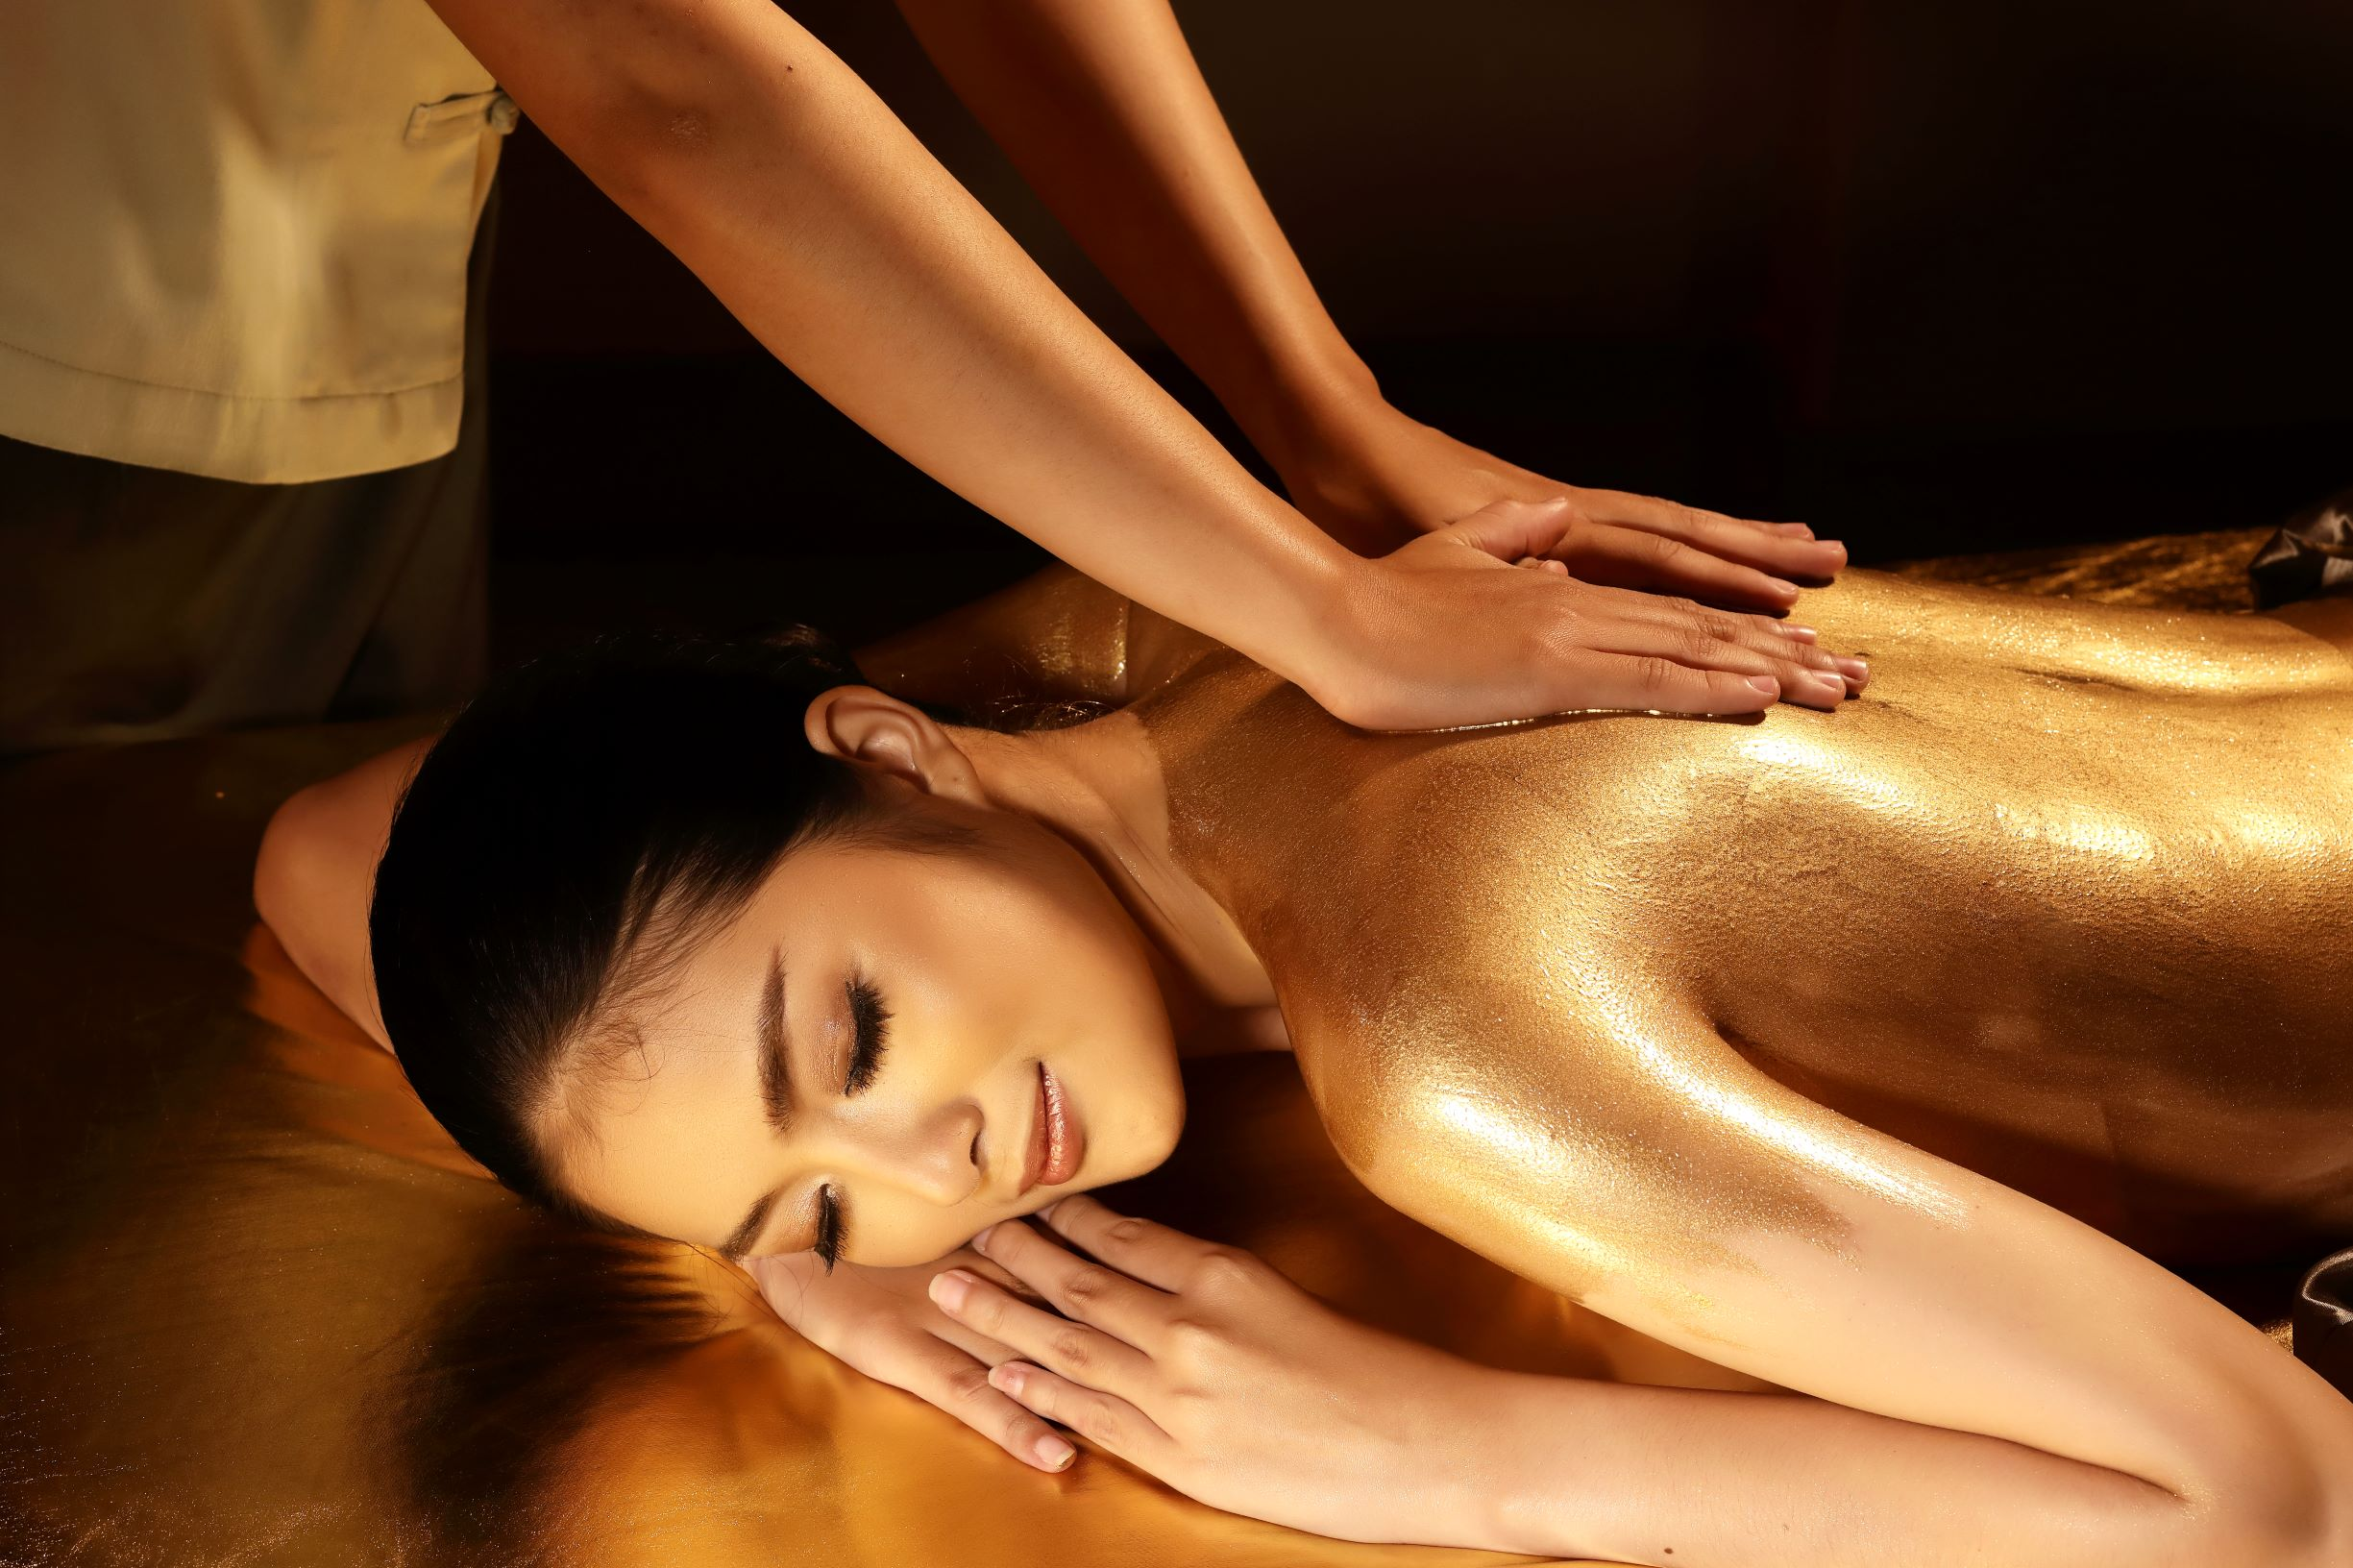 50% Off | Oasis Spa Massage in Chiang Mai (Transport Included)